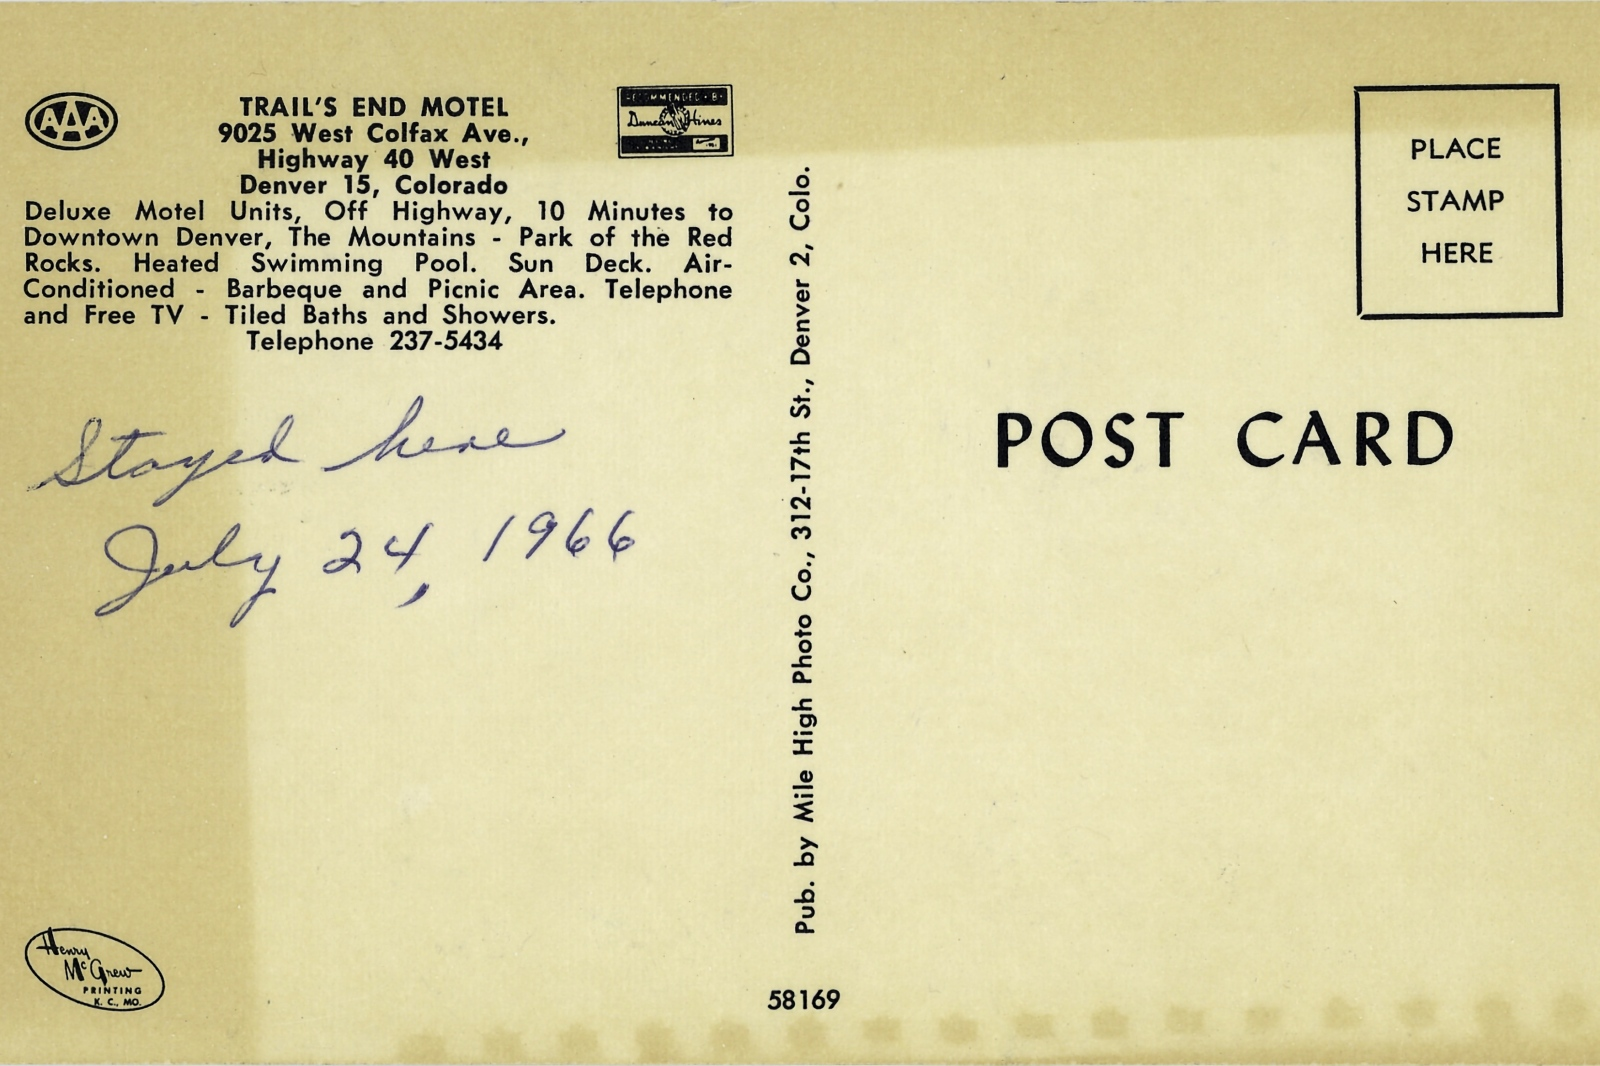 An old postcard from an old road motel from Colfax Avenue. On it's back, the text reads 'Stayed Here, July 24, 1966'.